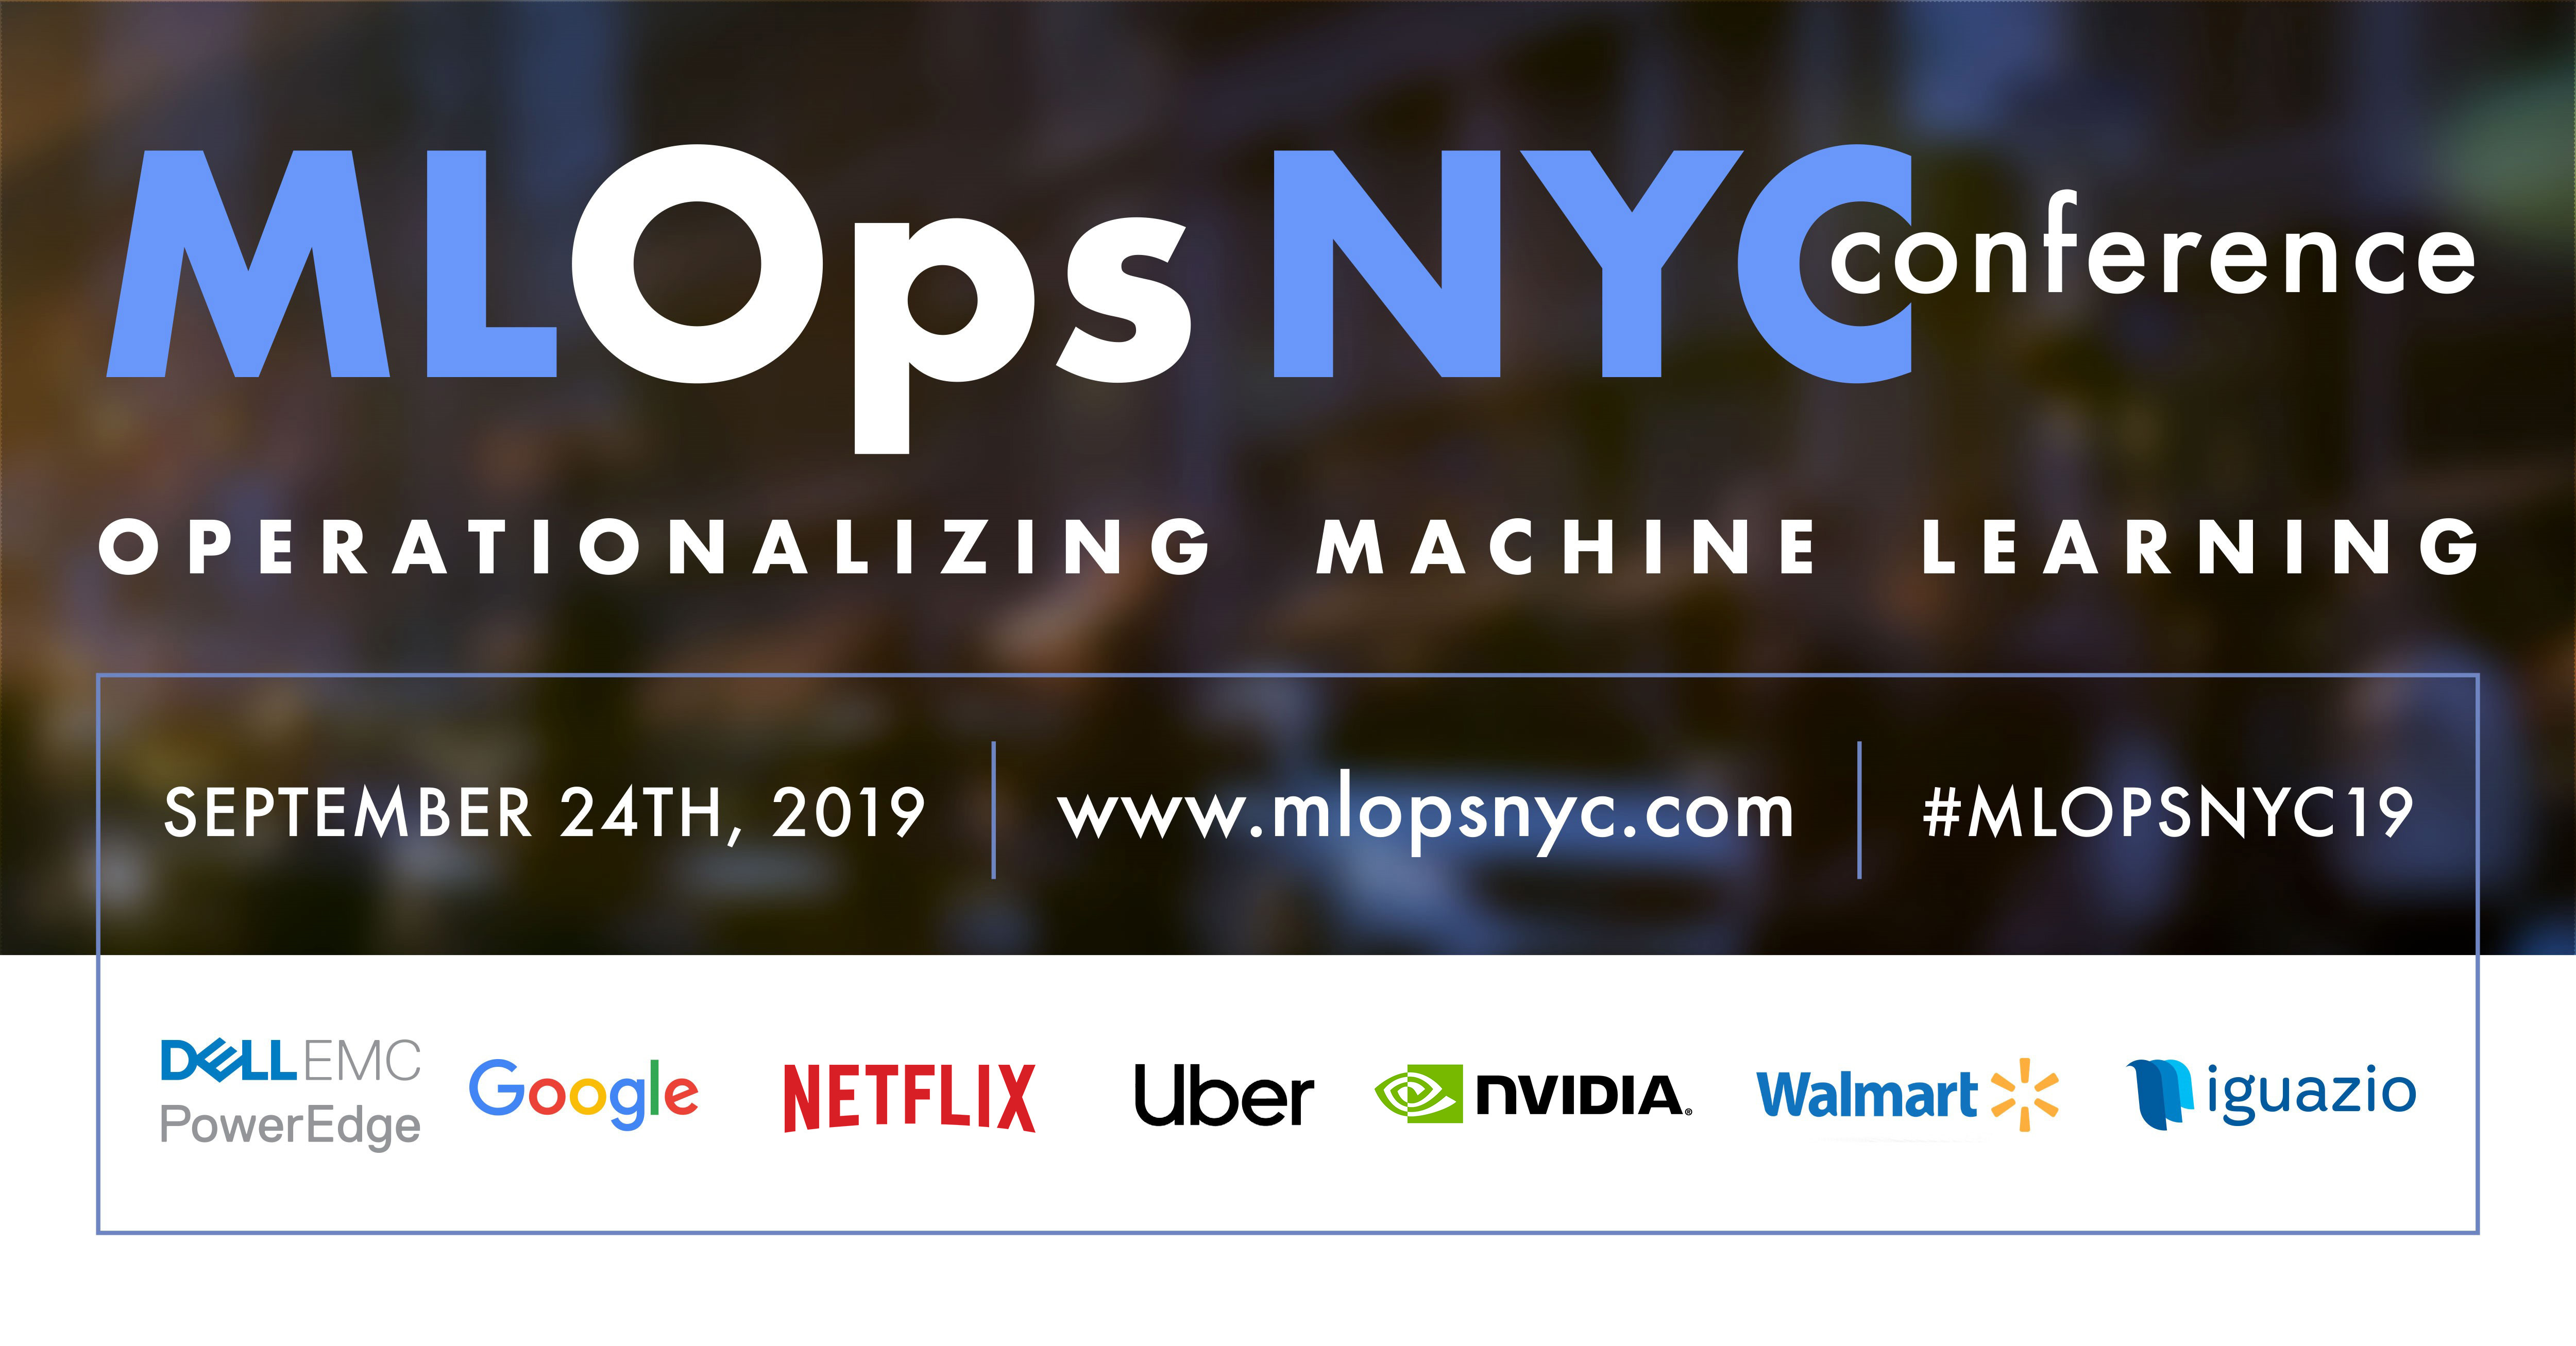 MLOps NYC19 Conference to Promote the Standardization of